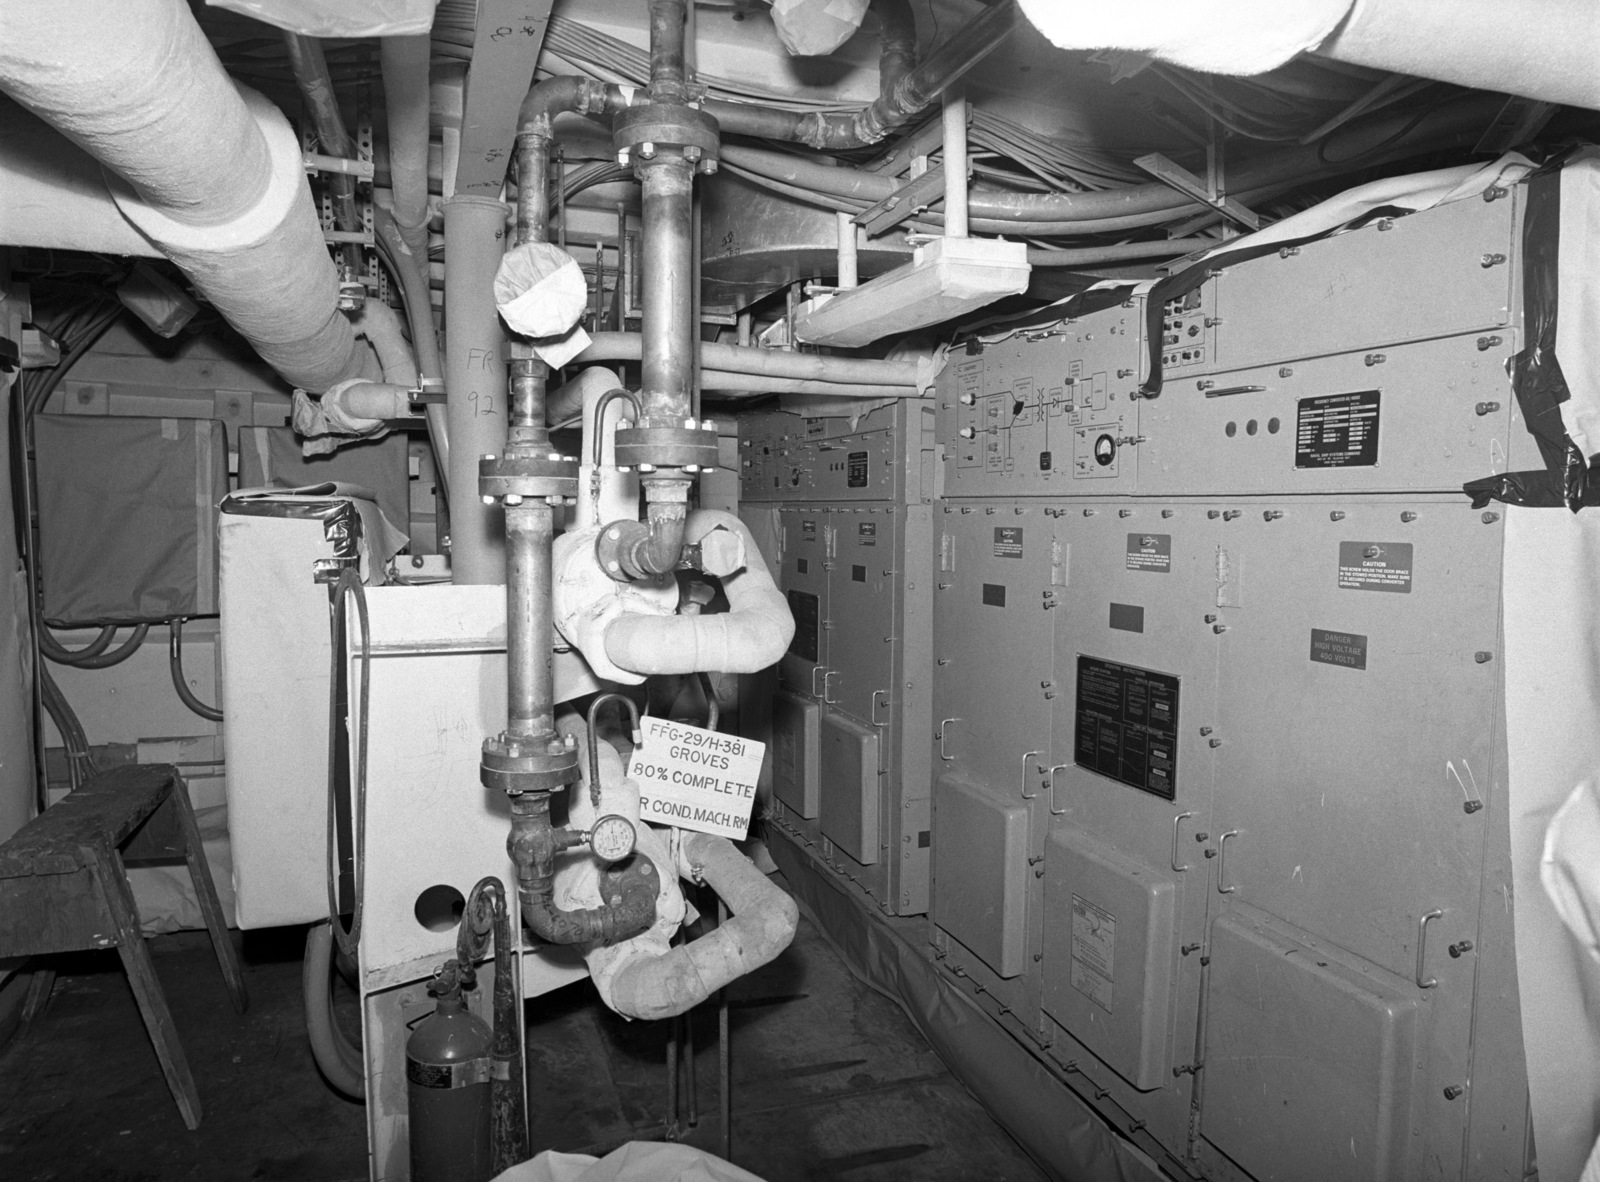 The air conditioning machinery room aboard the Oliver Hazard Perry class guided missile frigate USS STEPHEN W. GROVES (FFG 29) at 80 percent completion